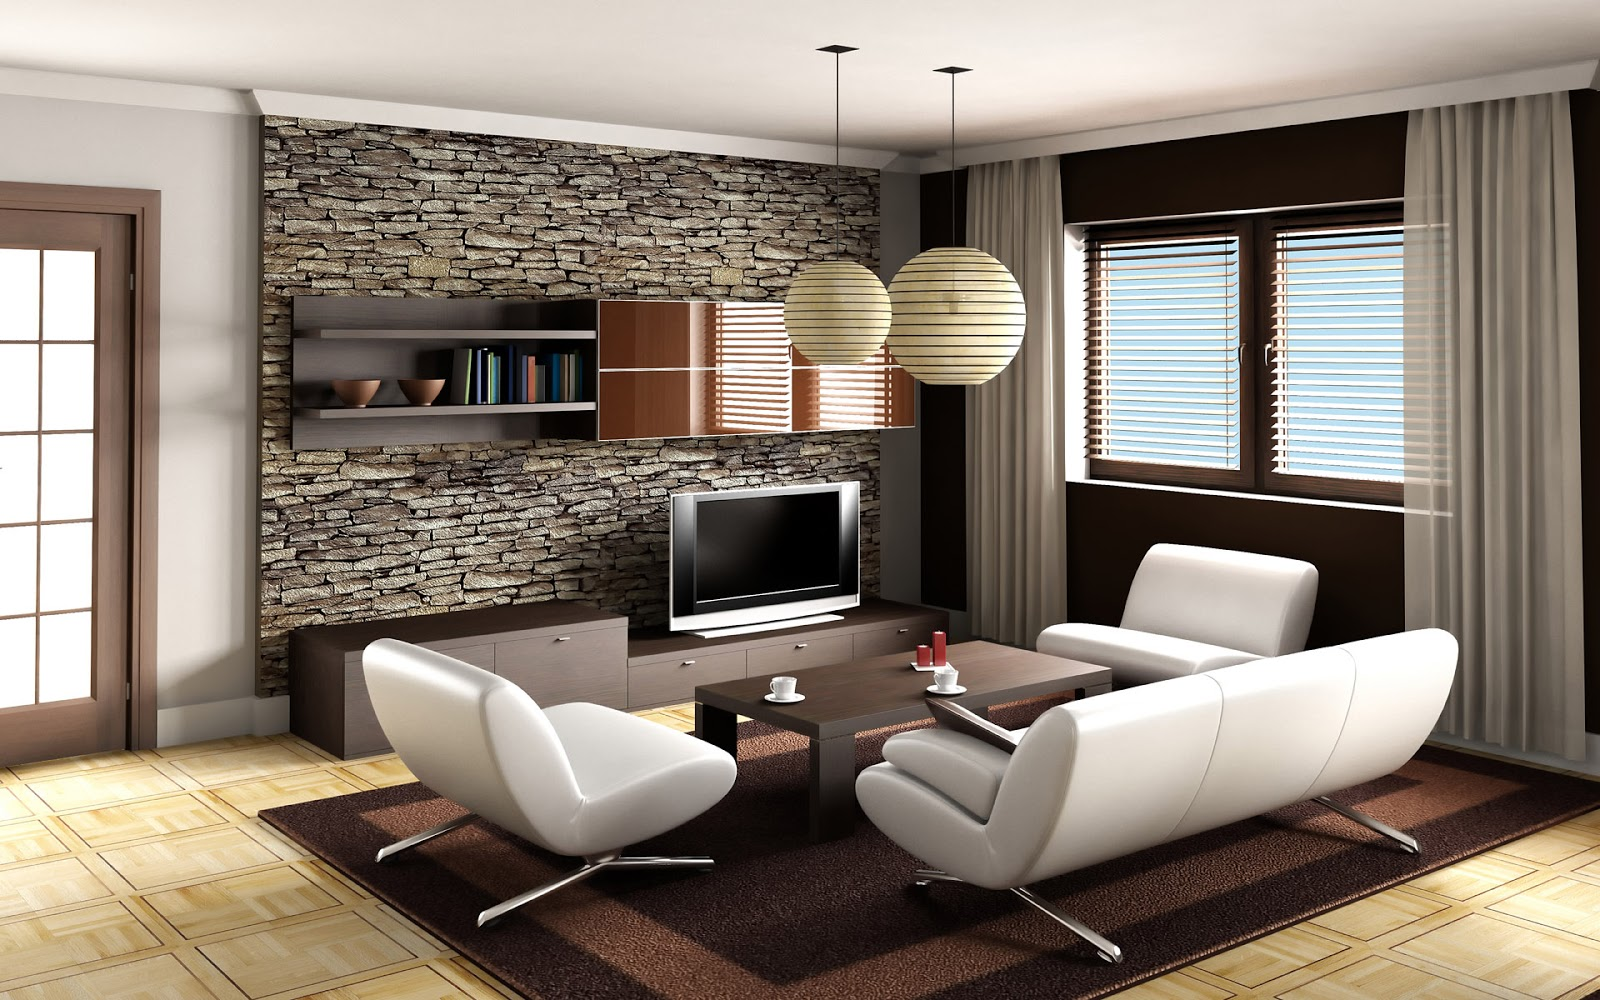 Arrangement of luxury living room ideas dream house for Simple decorating ideas for living room